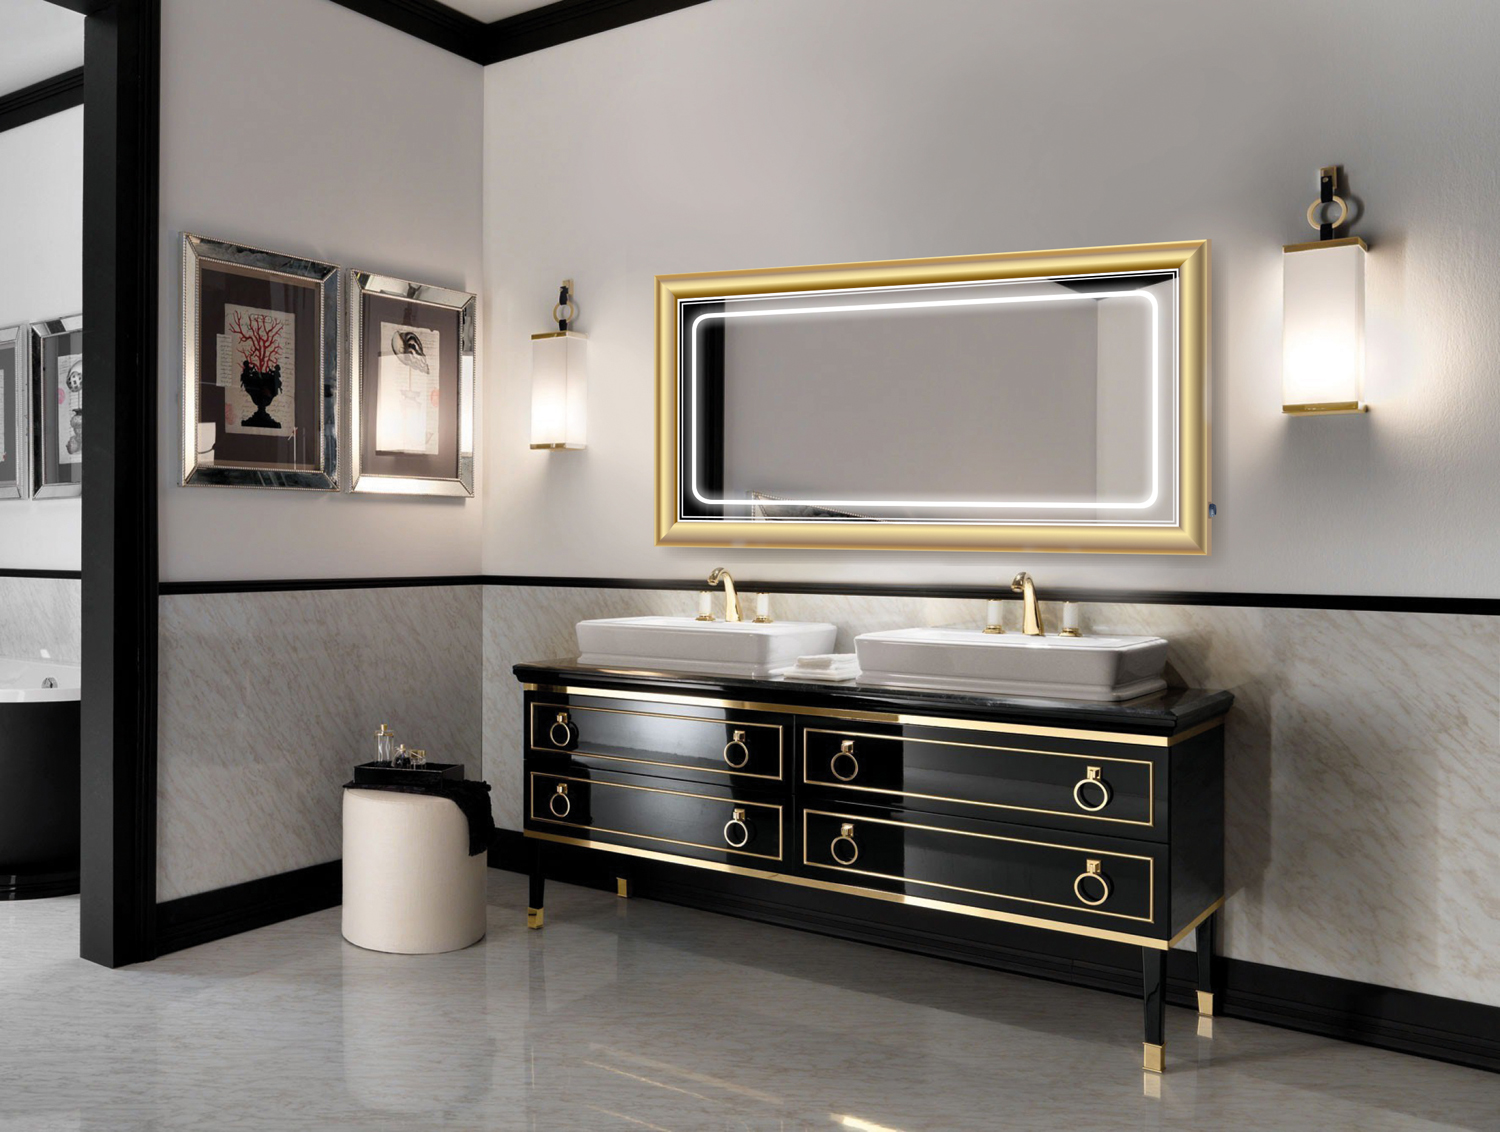 Lighted Mirror Bathroom Buy Bathroom Led Lighted Mirrors Backlit Mirrors Decoraport Usa Led: LED Lighted 60 Inch X 30 Inch Bathroom Gold Frame Mirror